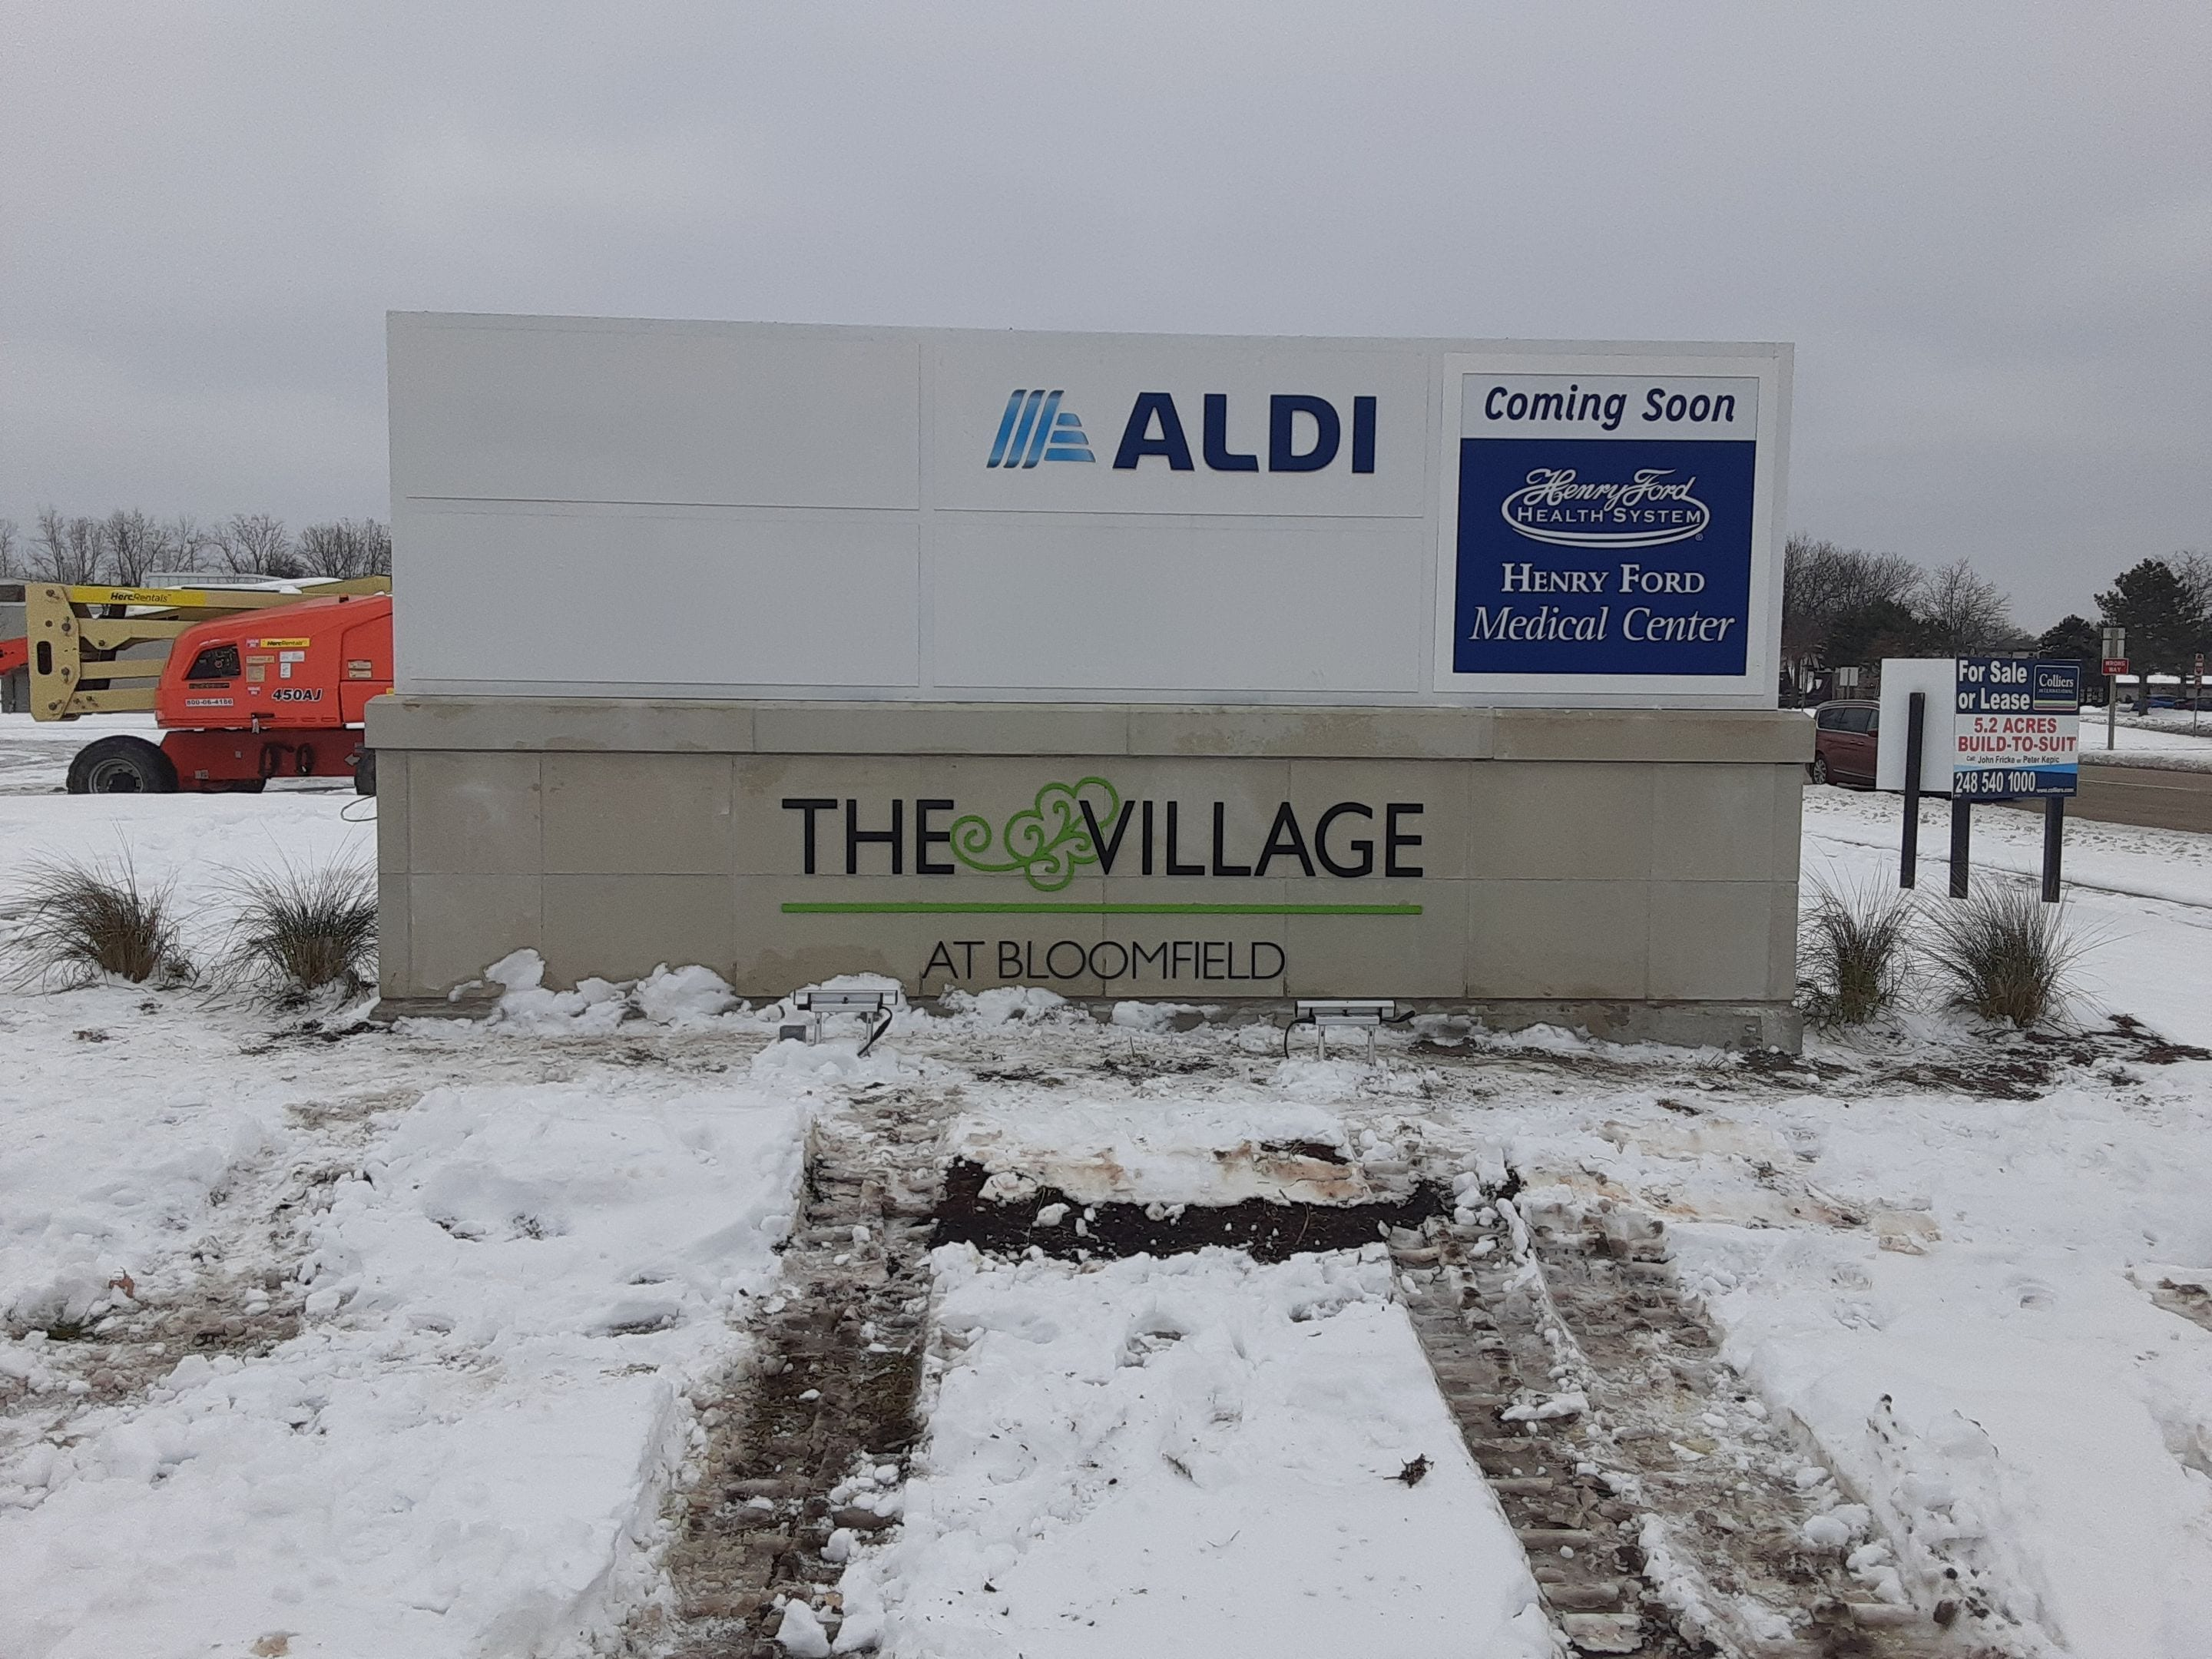 "The Village at Bloomfield Monument tenant panels Acrylic letters logo ""Aldi"" ""Coming Soon Henry Ford Medical Center"""